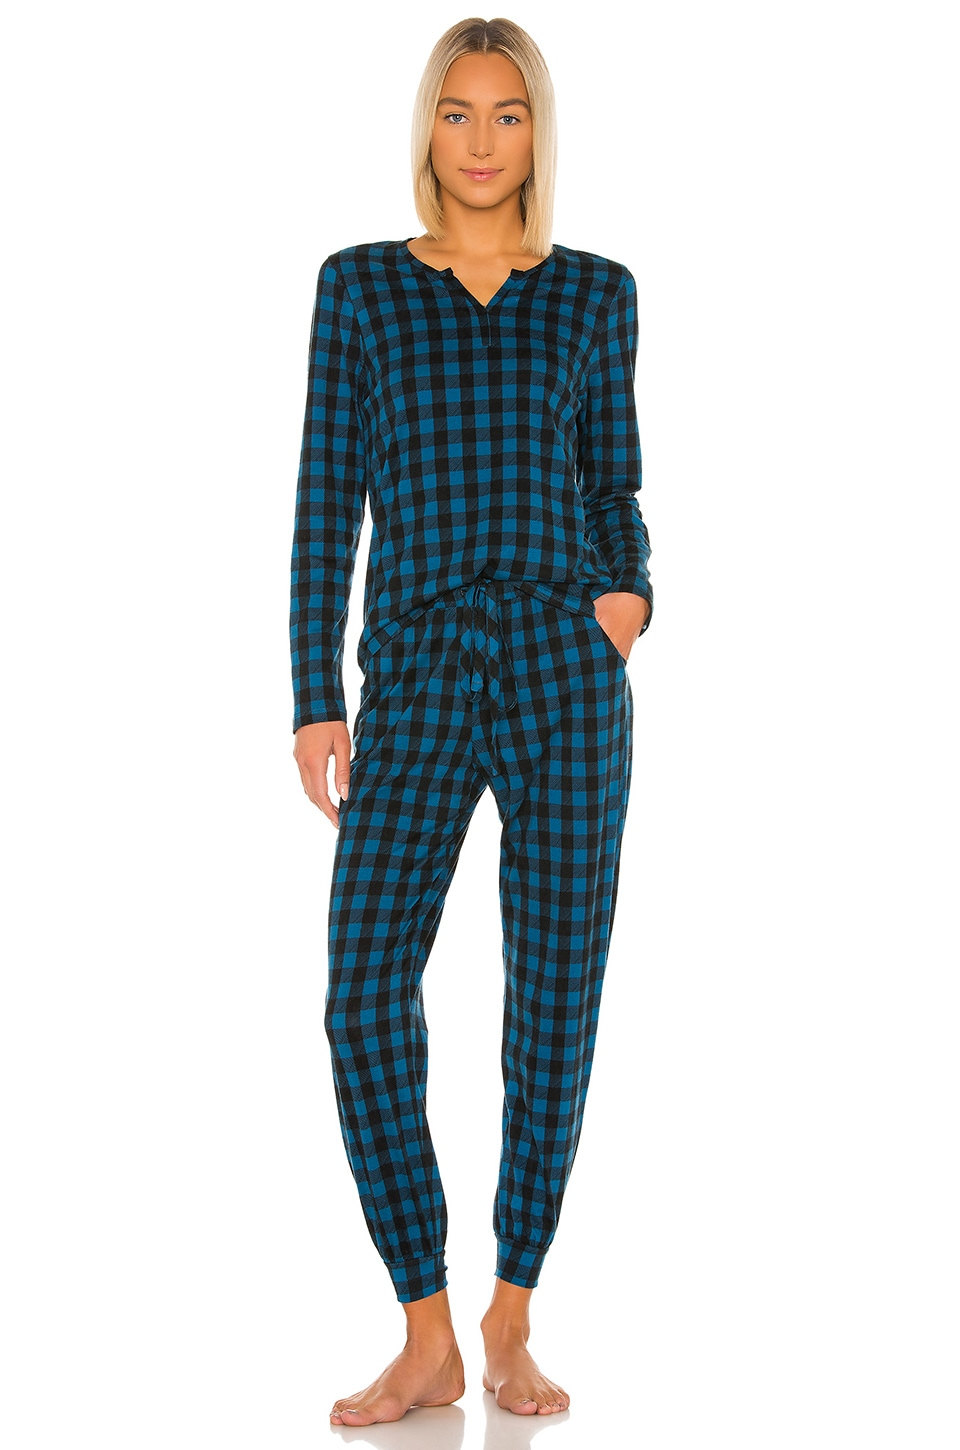 Cosabella Ski Trip Long Sleeve Top & Jogger PJ Set in Celestial Plaid & Black